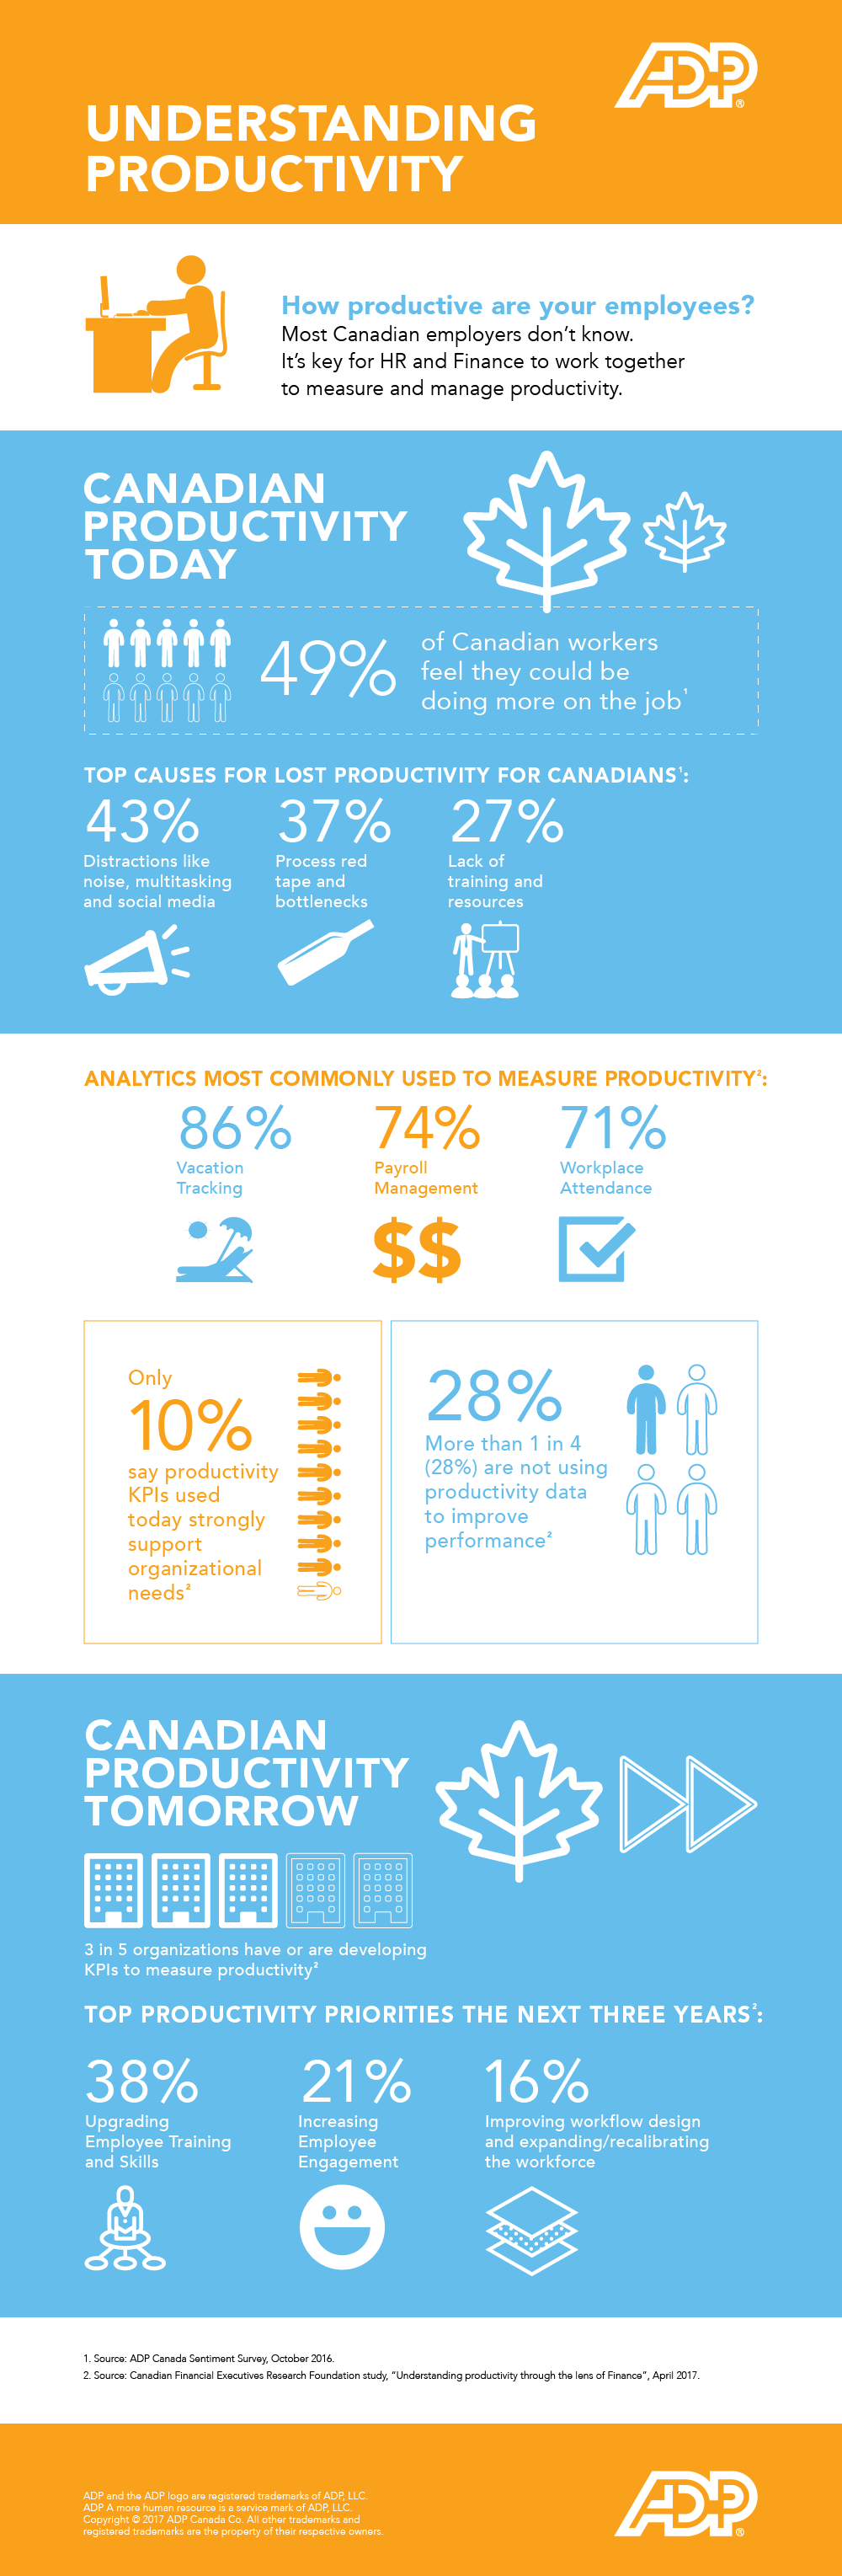 ADP Understands Productivity Infographic